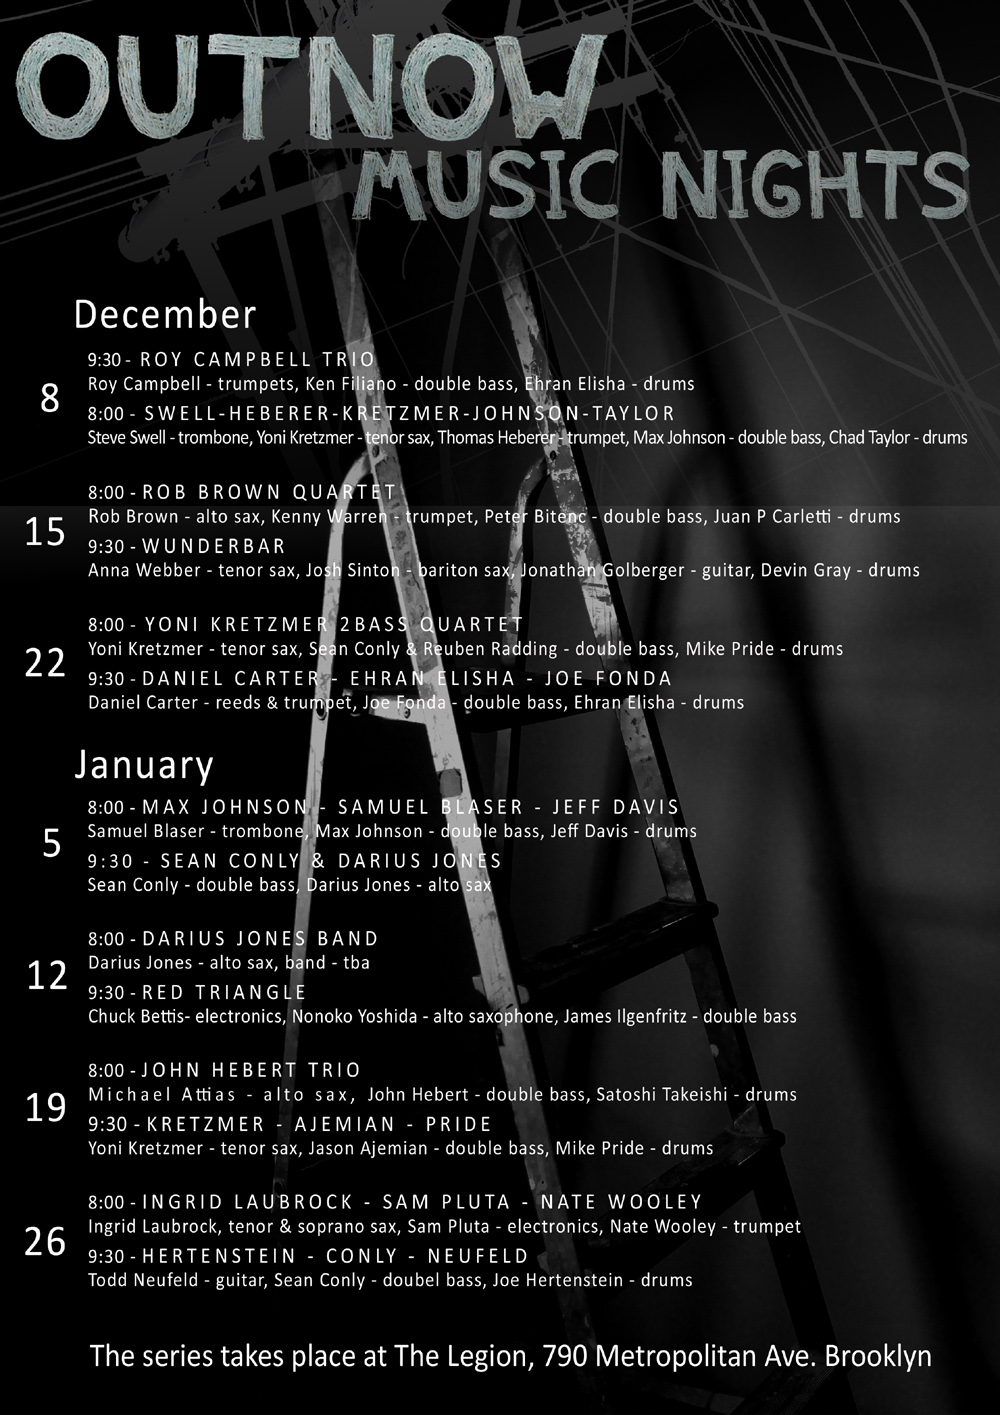 OutNow Music Nights program - December 2013 & January 2014